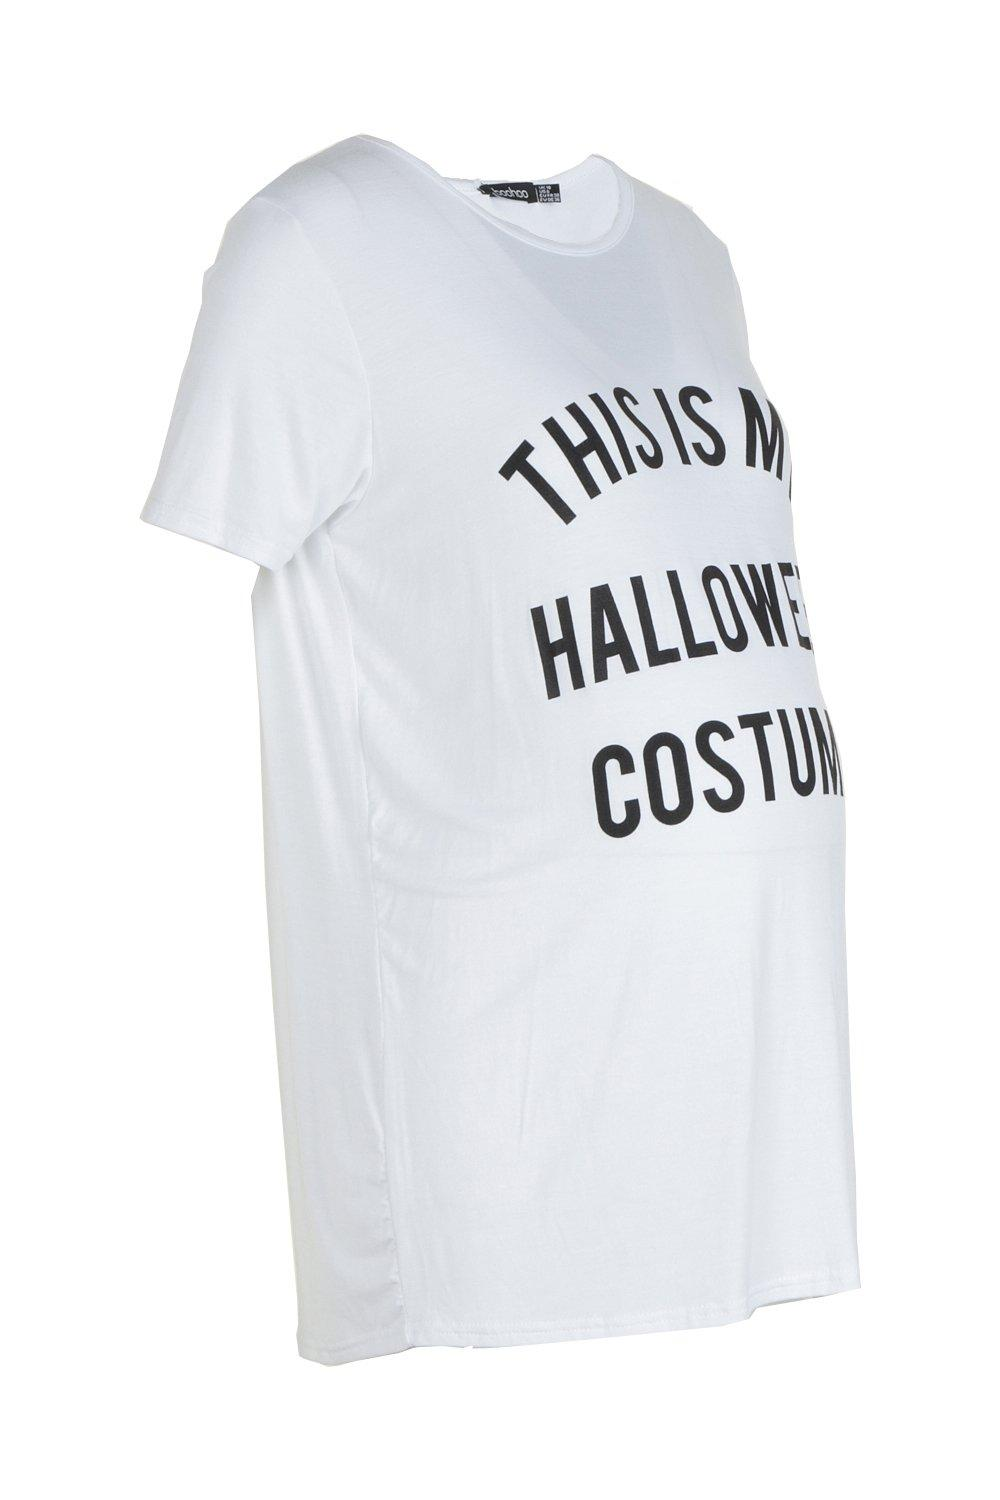 Printed Halloween Maternity white Maternity Tee Printed Printed Halloween white Tee Tee Halloween Maternity white Maternity xtYgAq